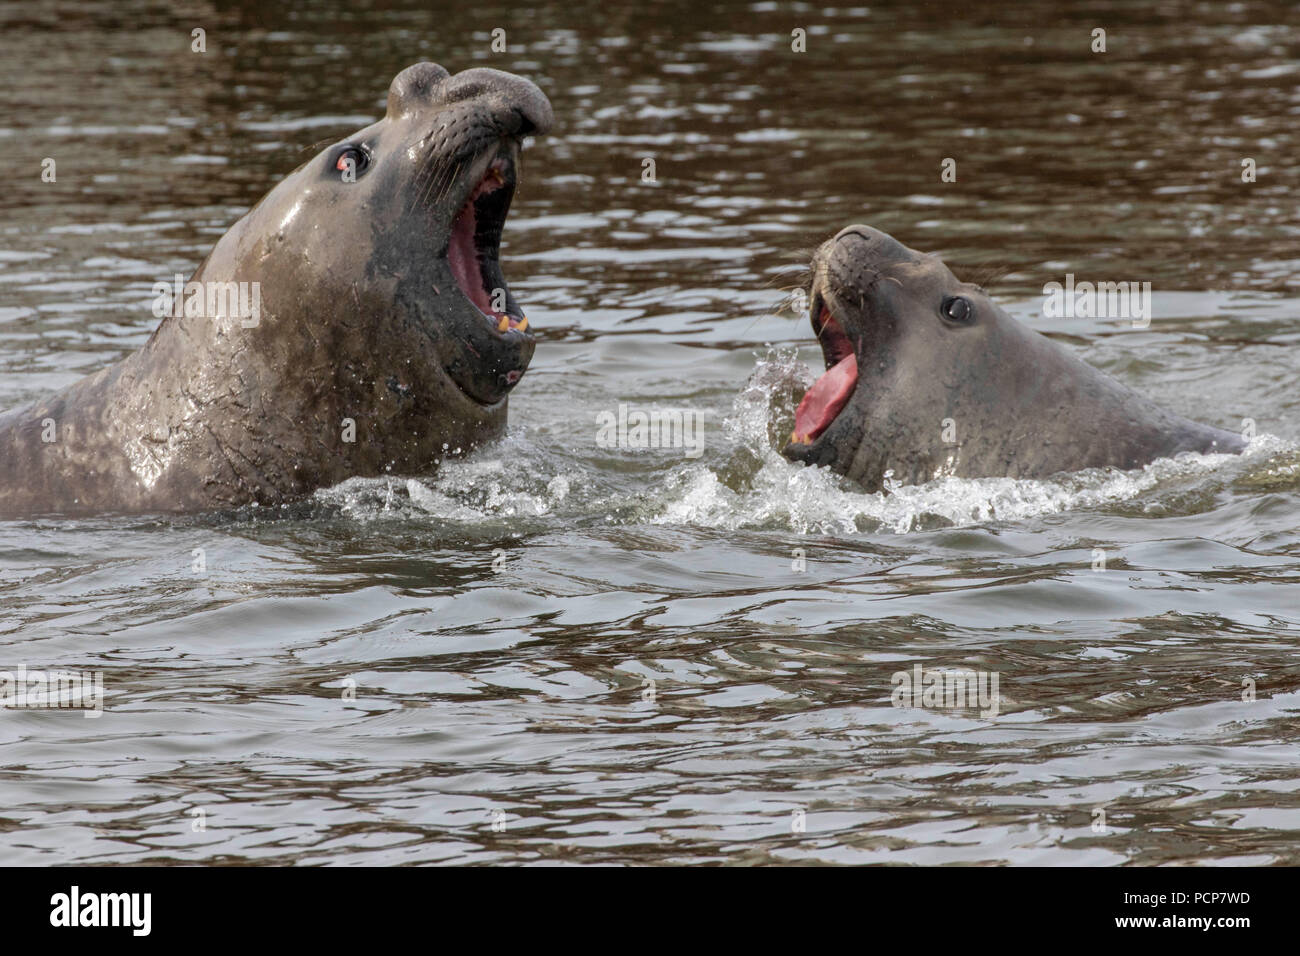 Two juvenile male elephant seals in a mock battle - Stock Image